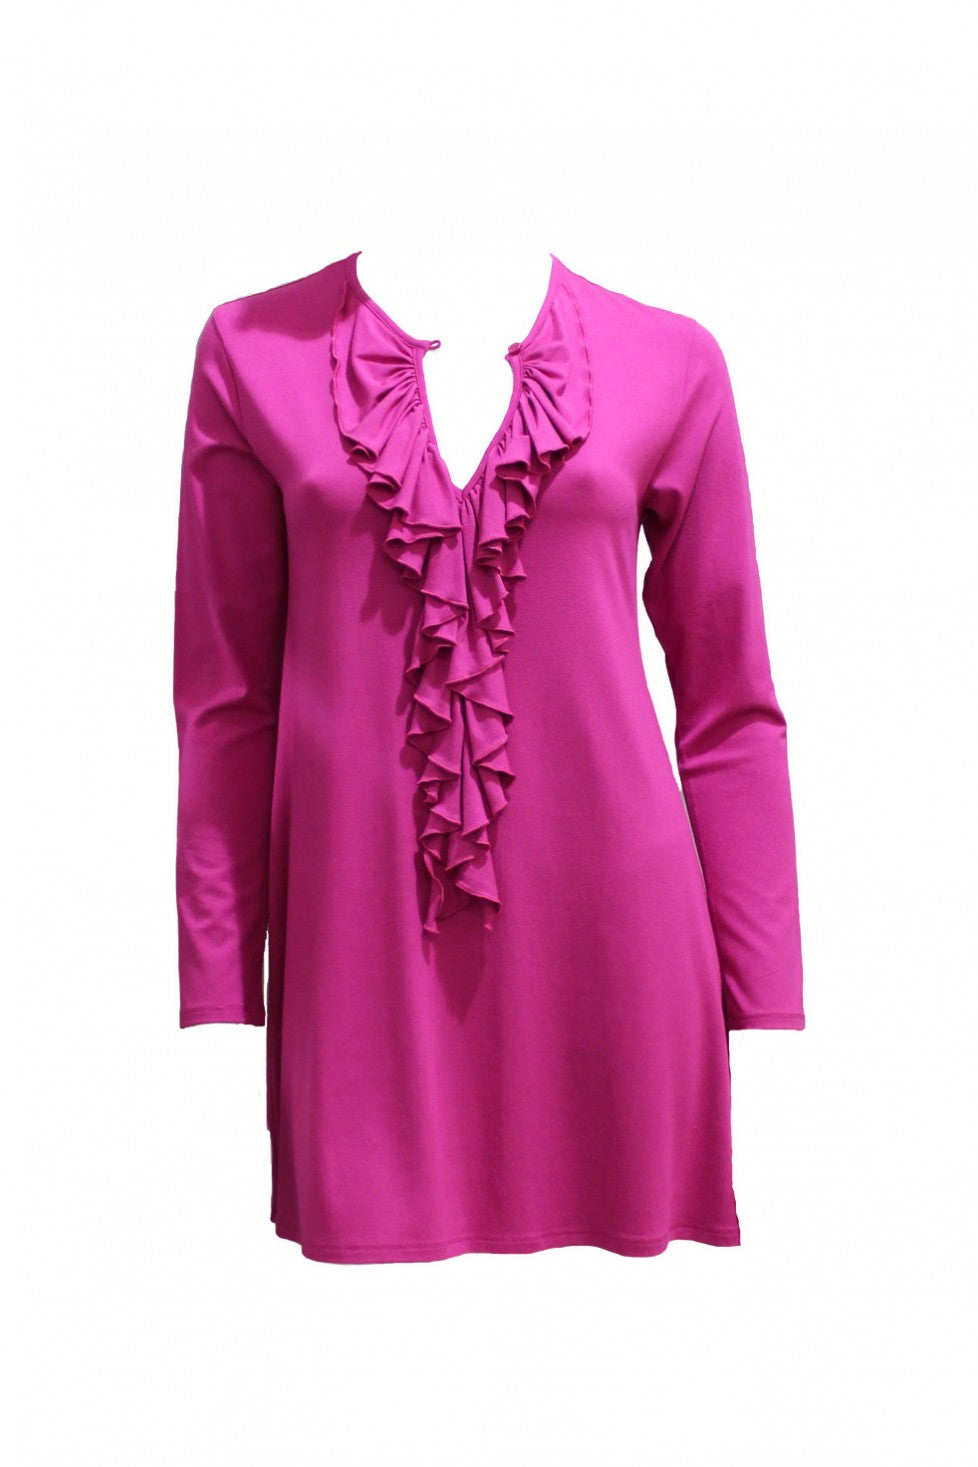 Magenta Mela Purdie Flamenco Blouse Style and Grace